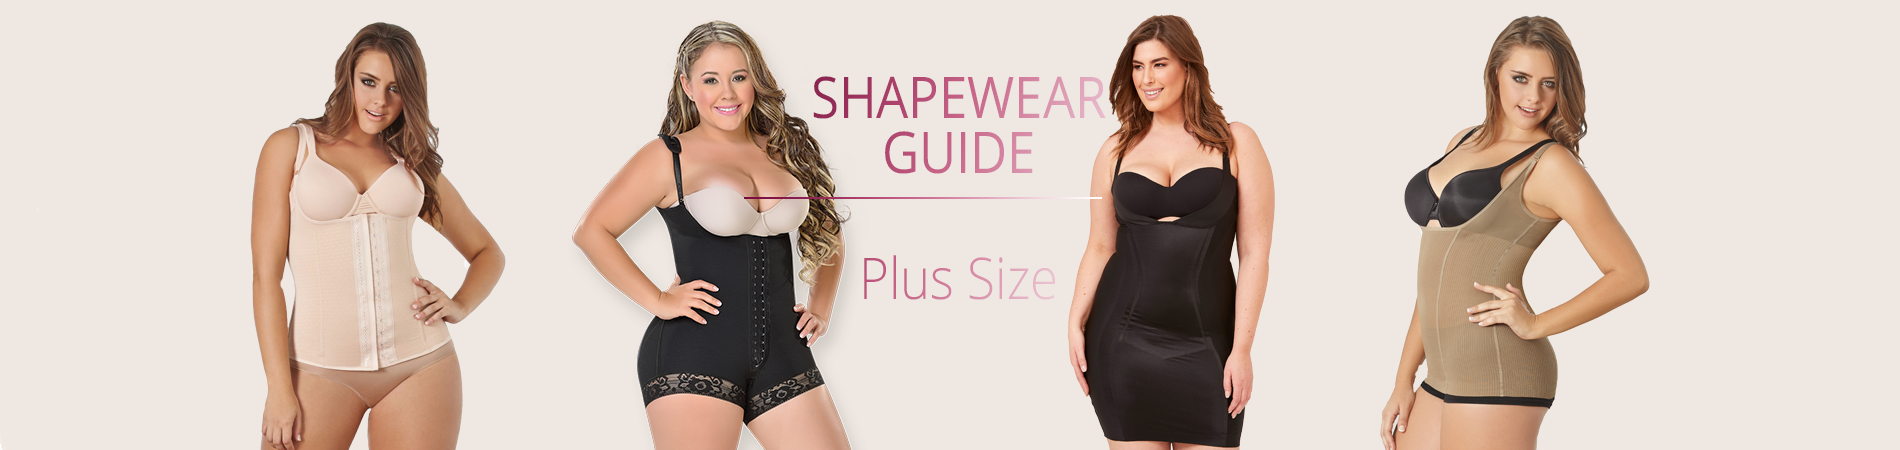 Plus Size Shapewear Guide